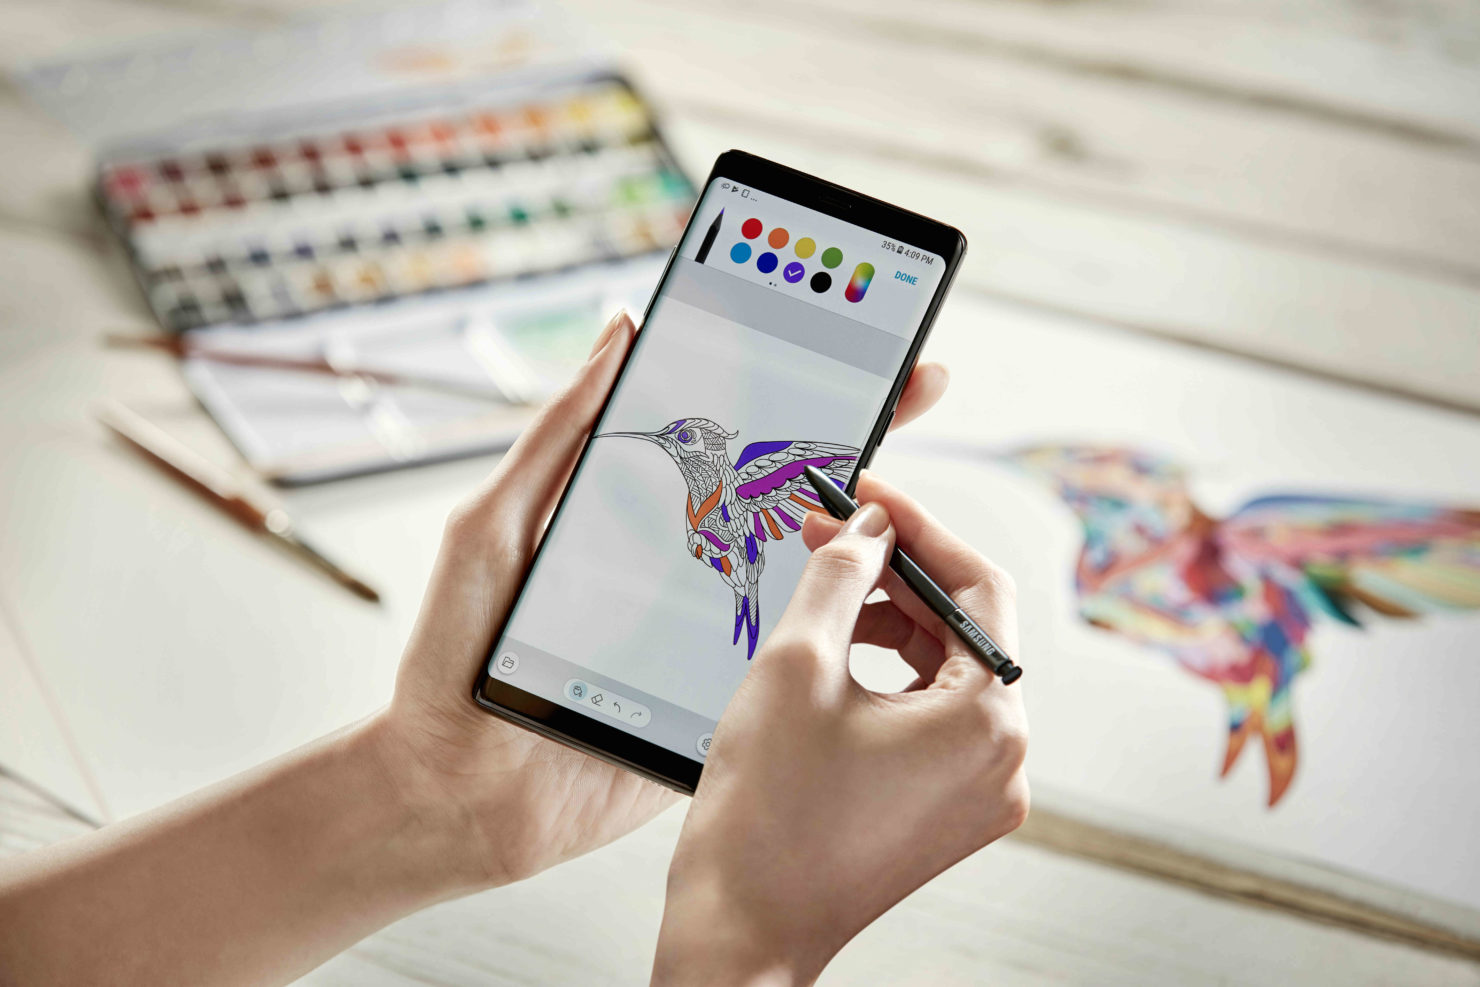 Galaxy Note 9's S Pen to Come With Major Upgrades, Hints Leakster and Will Be Worth the Wait